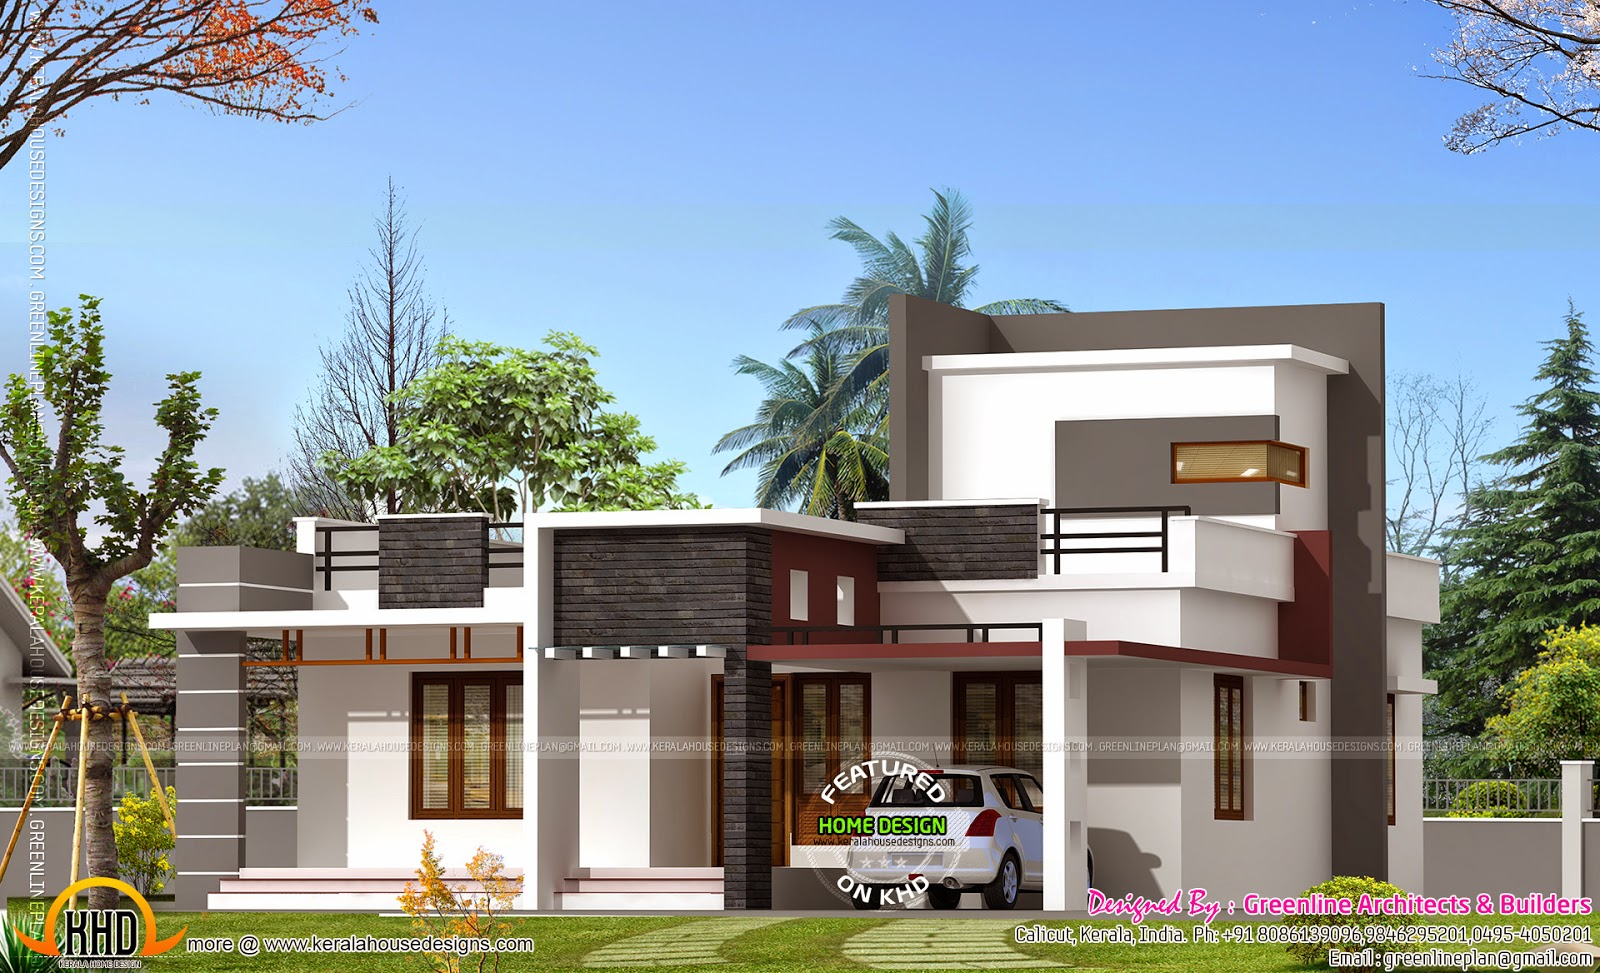 1000 square feet house kerala home design and floor plans for Kerala home design 1000 sq feet